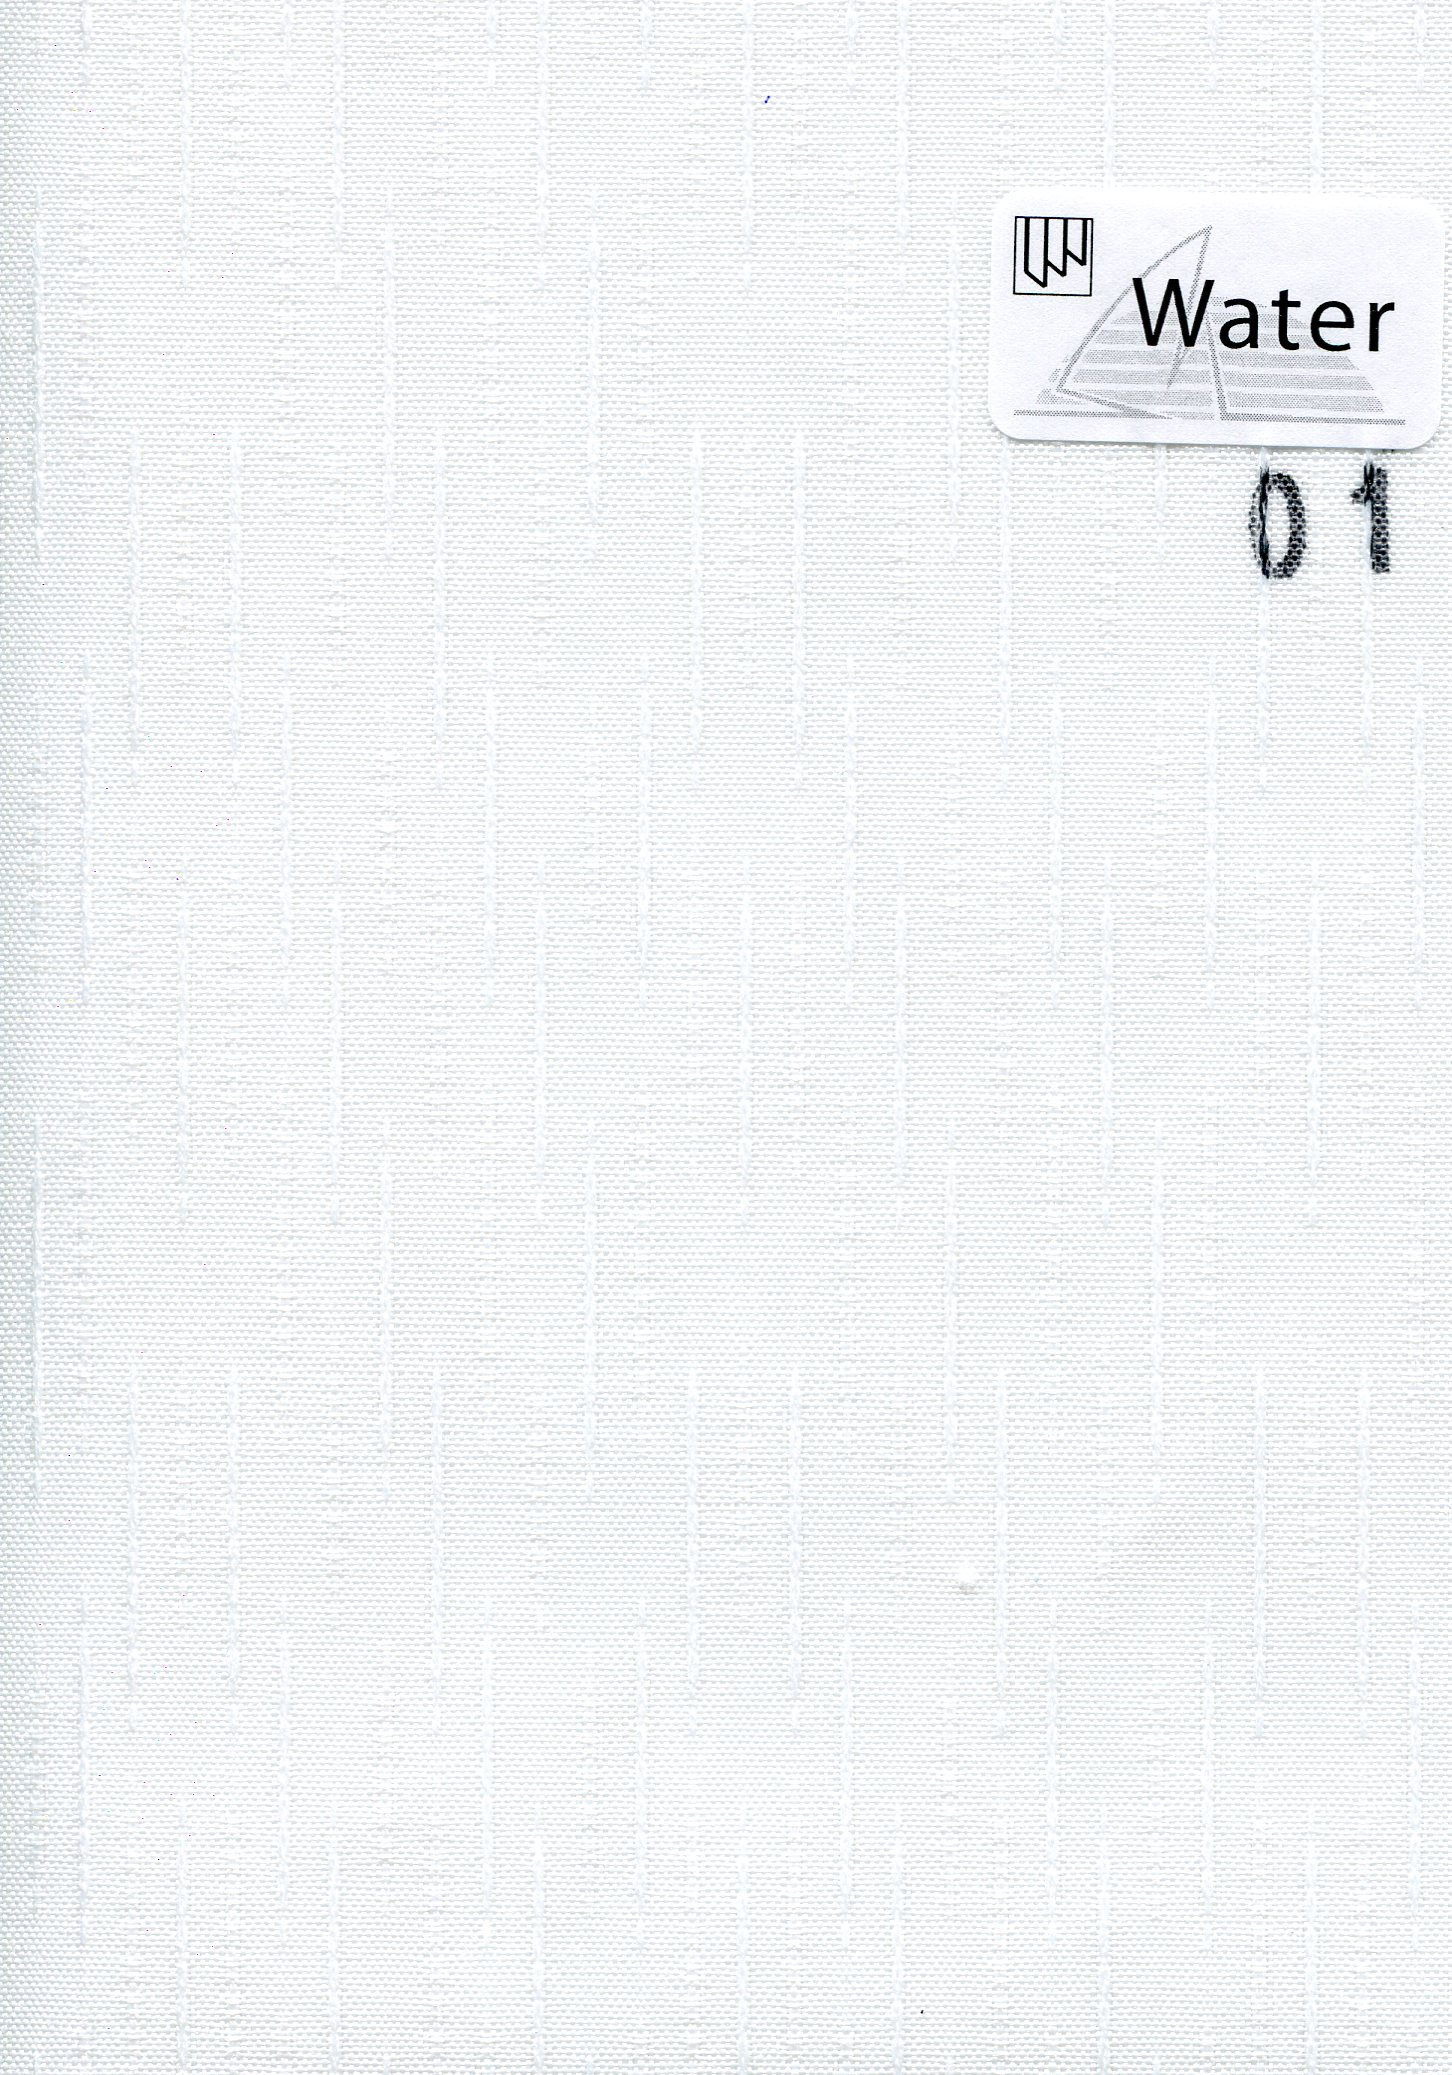 Water 01